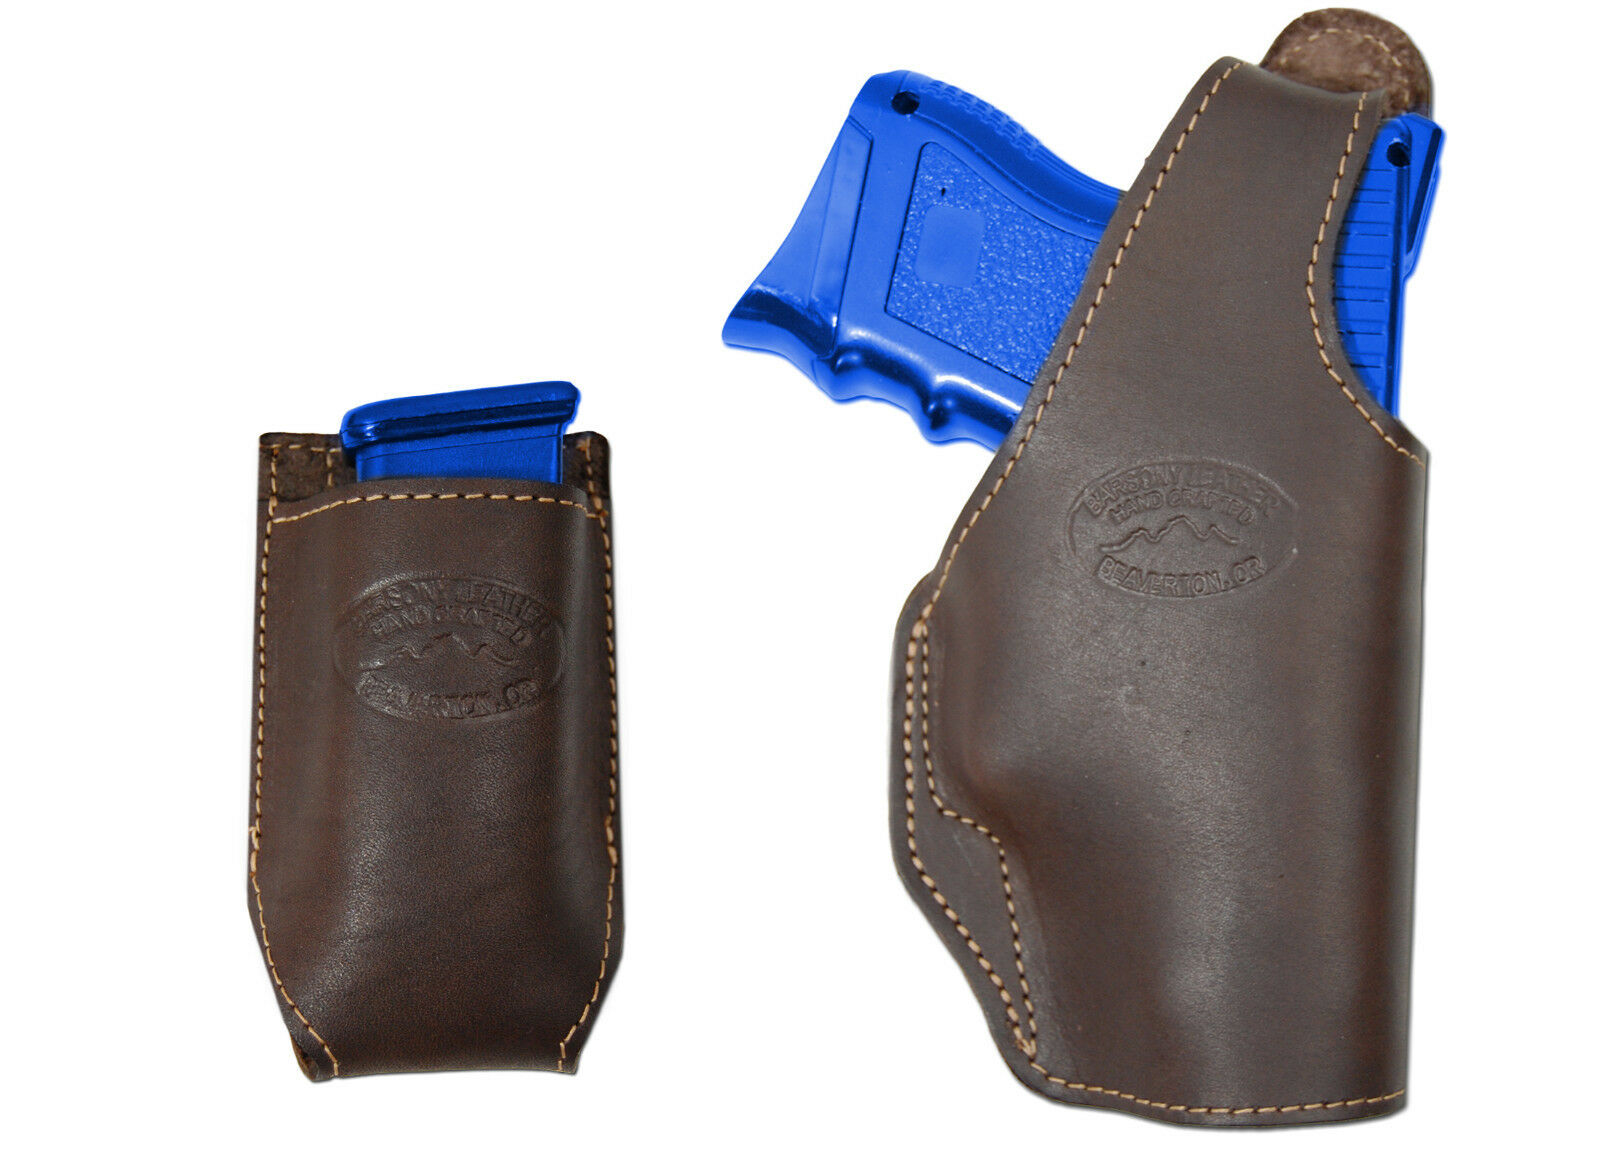 New Barsony Brown Leather OWB Holster + Mag Pouch Sig-Sauer Compact 9mm 40 45